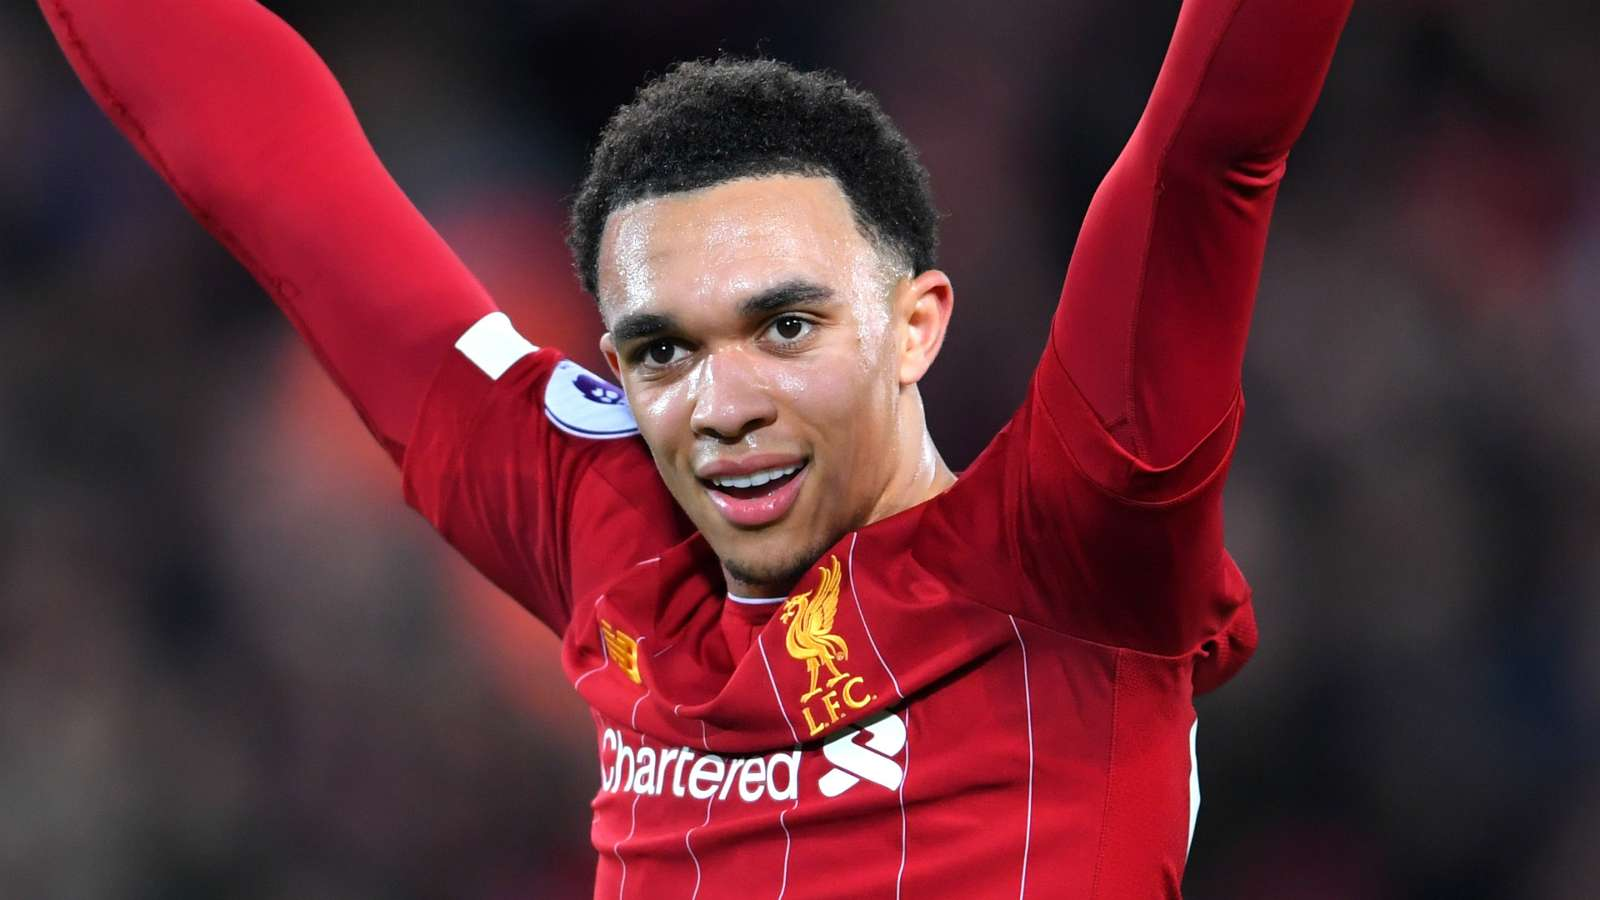 Nobody Wants To Grow Up To Be A Gary Neville - Liverpool's Alexander-Arnold 3